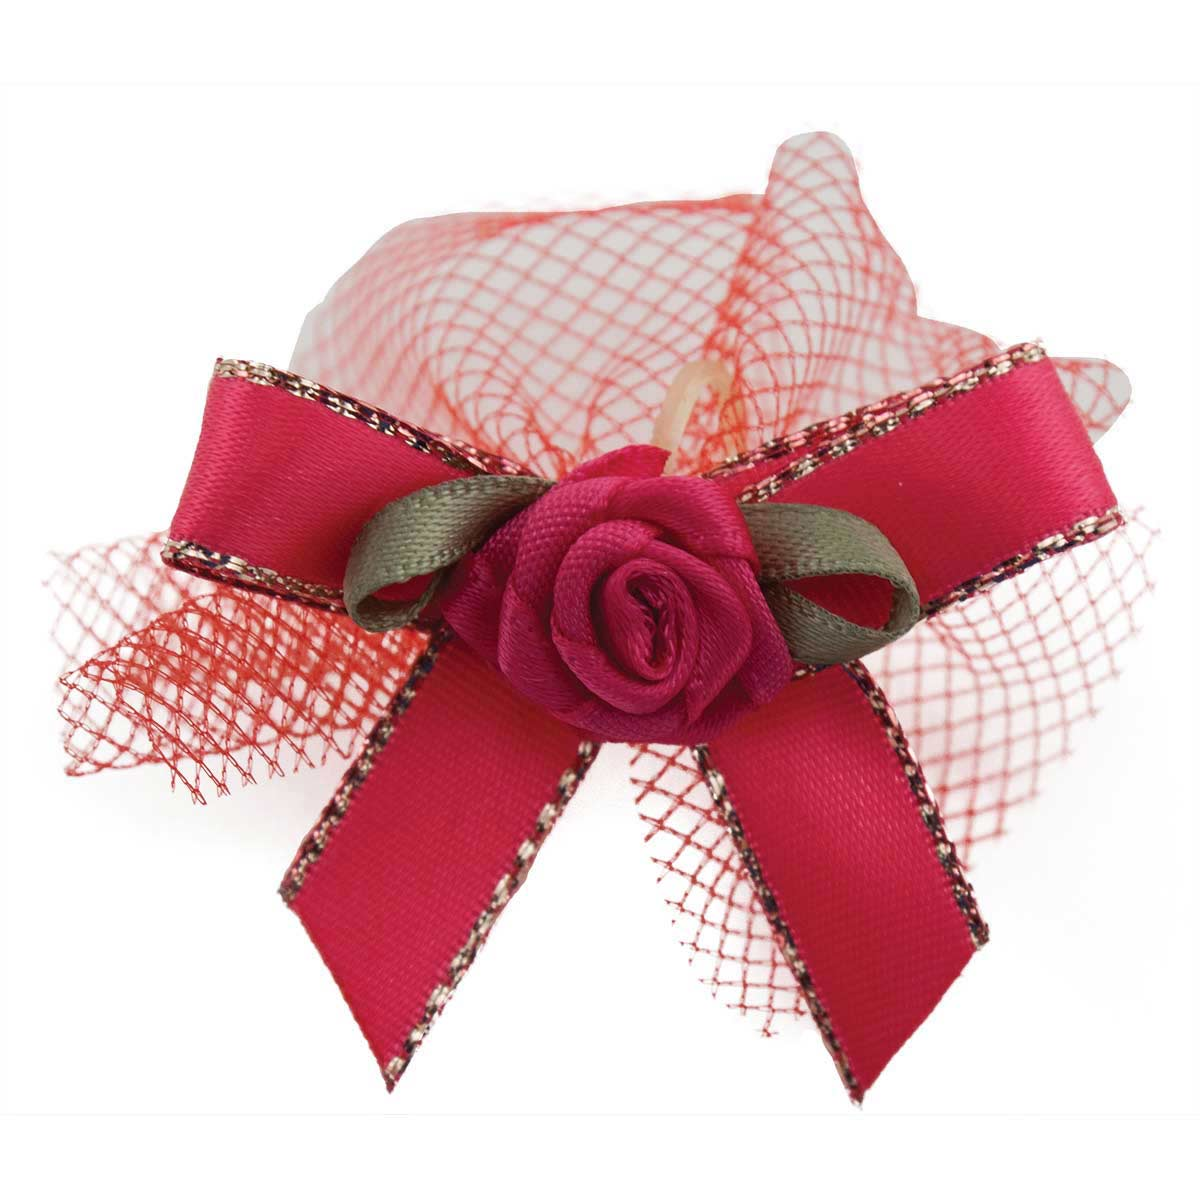 Fancy Finishes Gold Edge Satin Bows With Tulle And Rose Center - 100 Count Bag